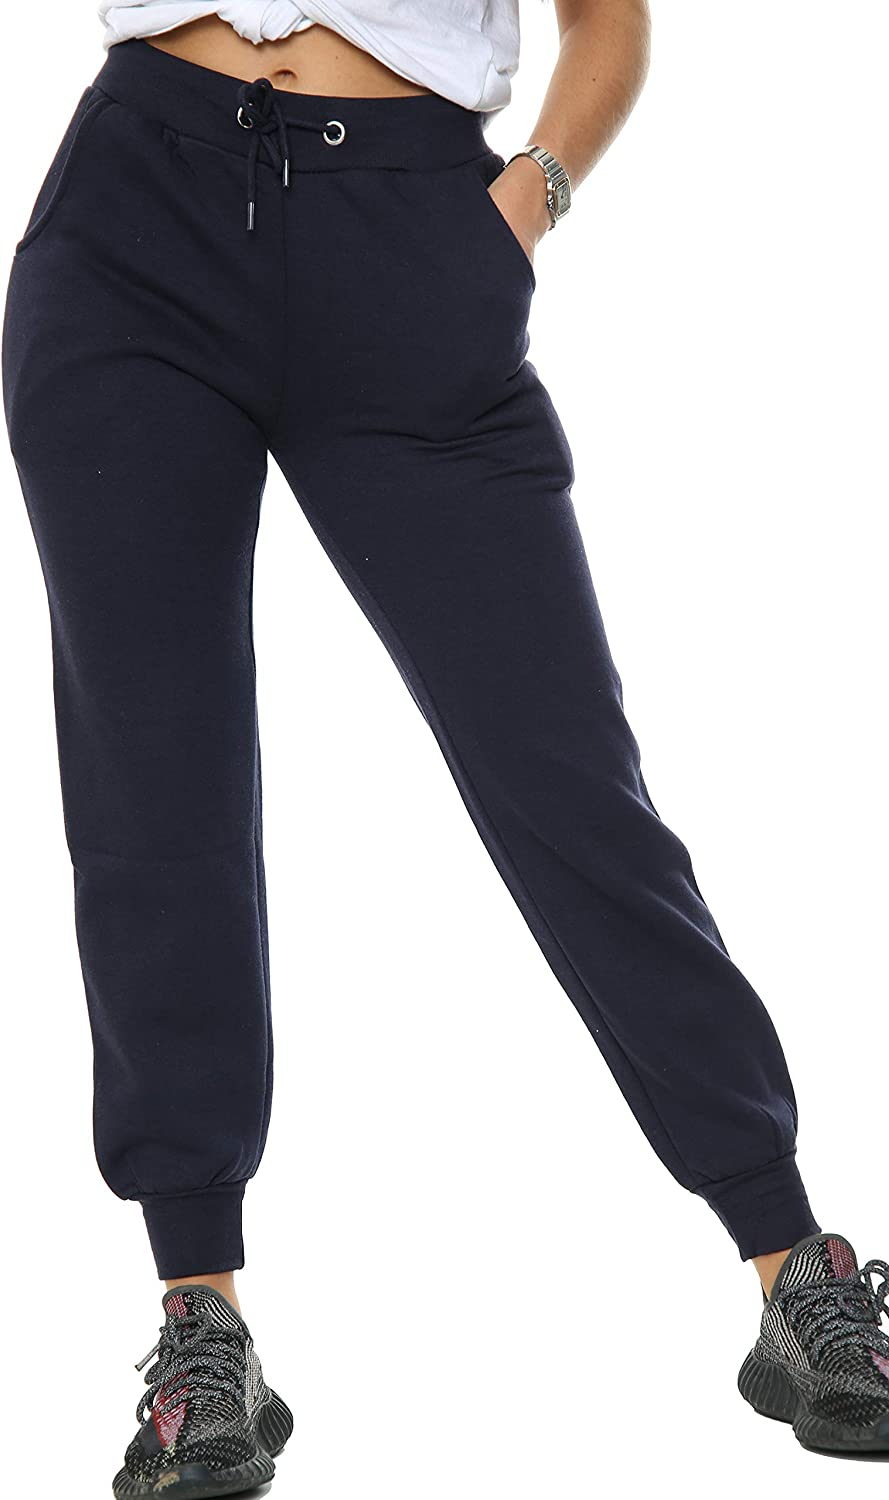 WAQS Joggers for Women Casual Slim Fit Ladies Jogging Bottoms Fleece Tapered Elasticated